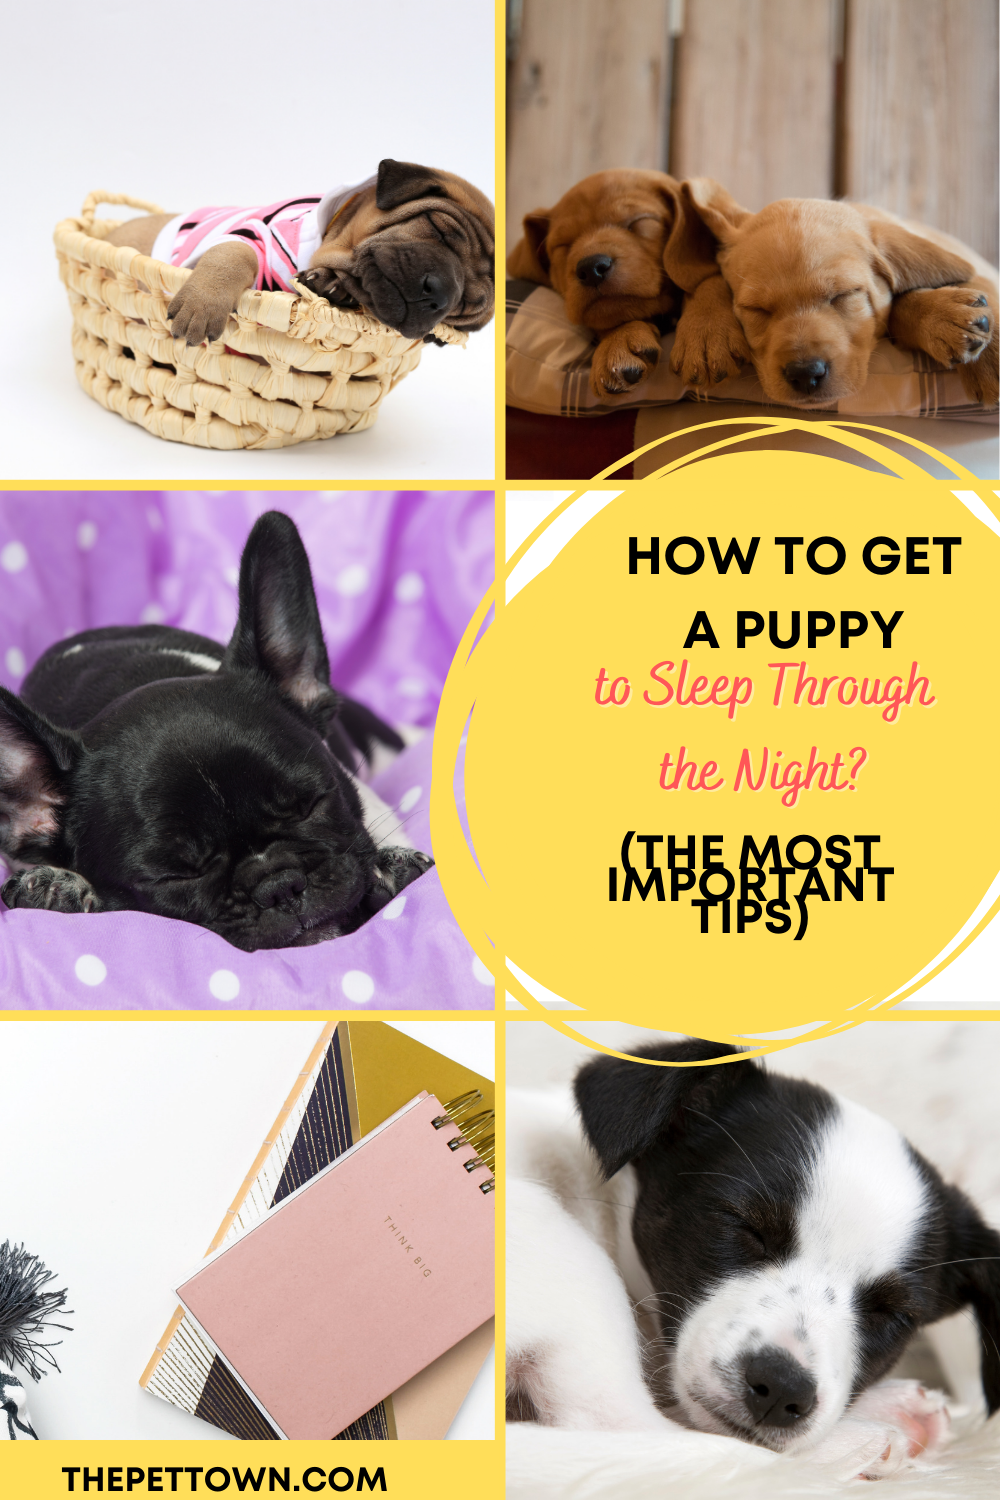 How To Get A Puppy To Go To Sleep Puppy Whining At Night Getting A Puppy Sleeping Puppies